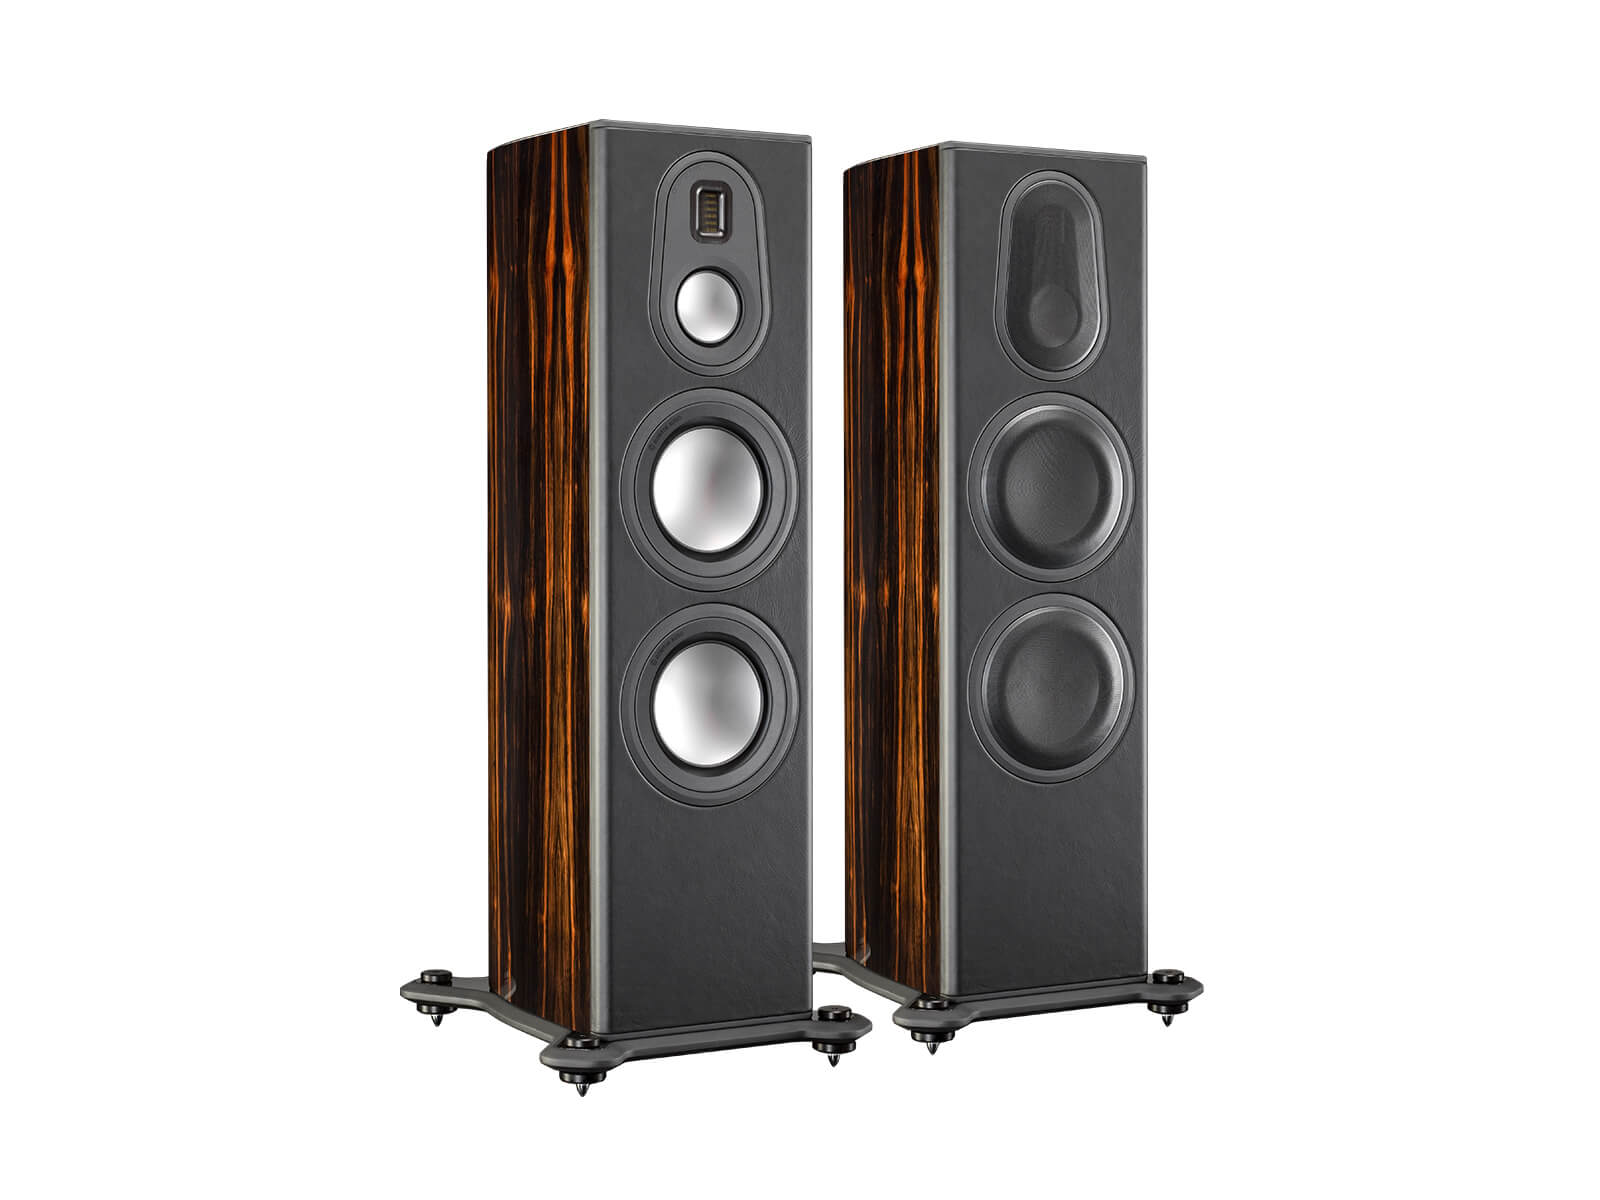 Platinum PL300 II, grille-less floorstanding speakers, with a piano black lacquer finish.